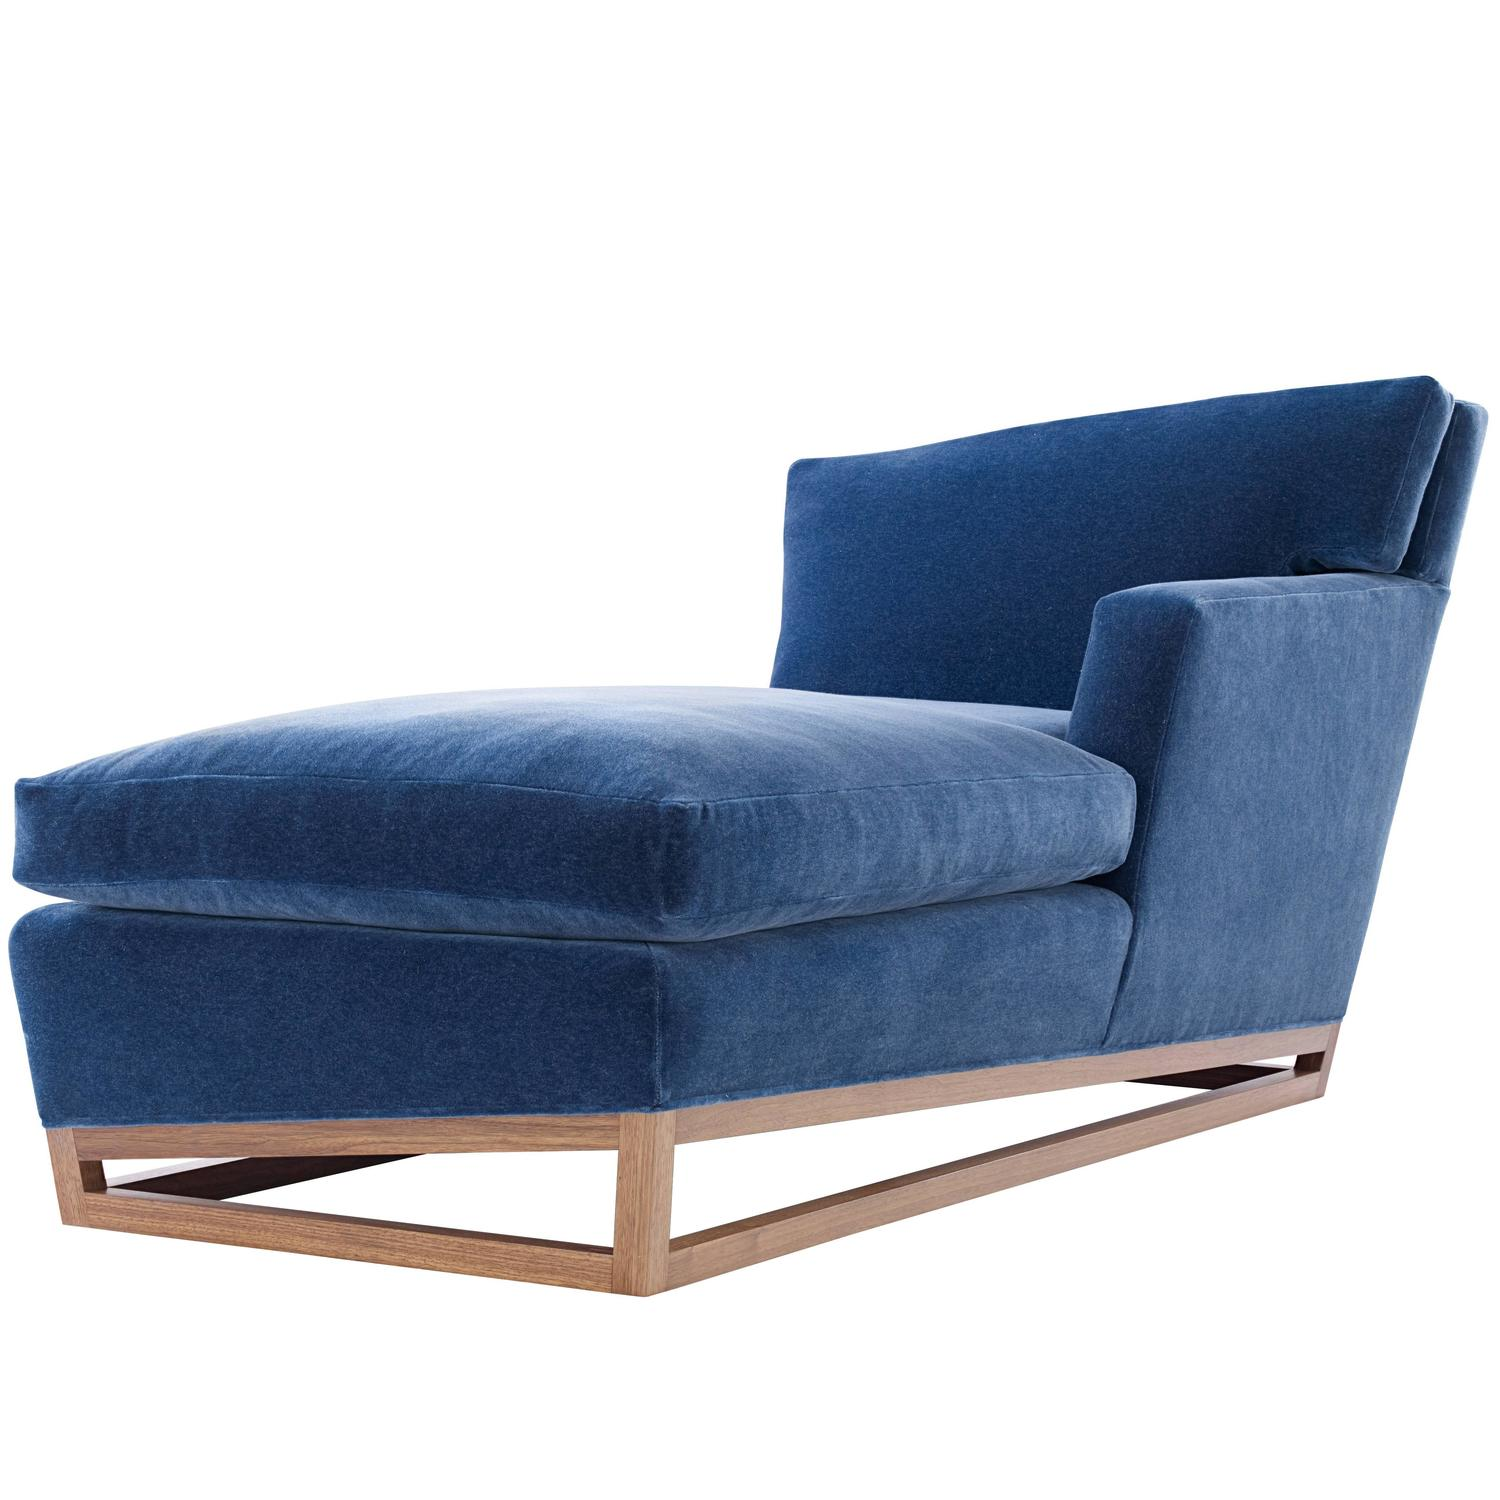 Handmade Contemporary Modern Chaise Longue Lounge in Velvet with